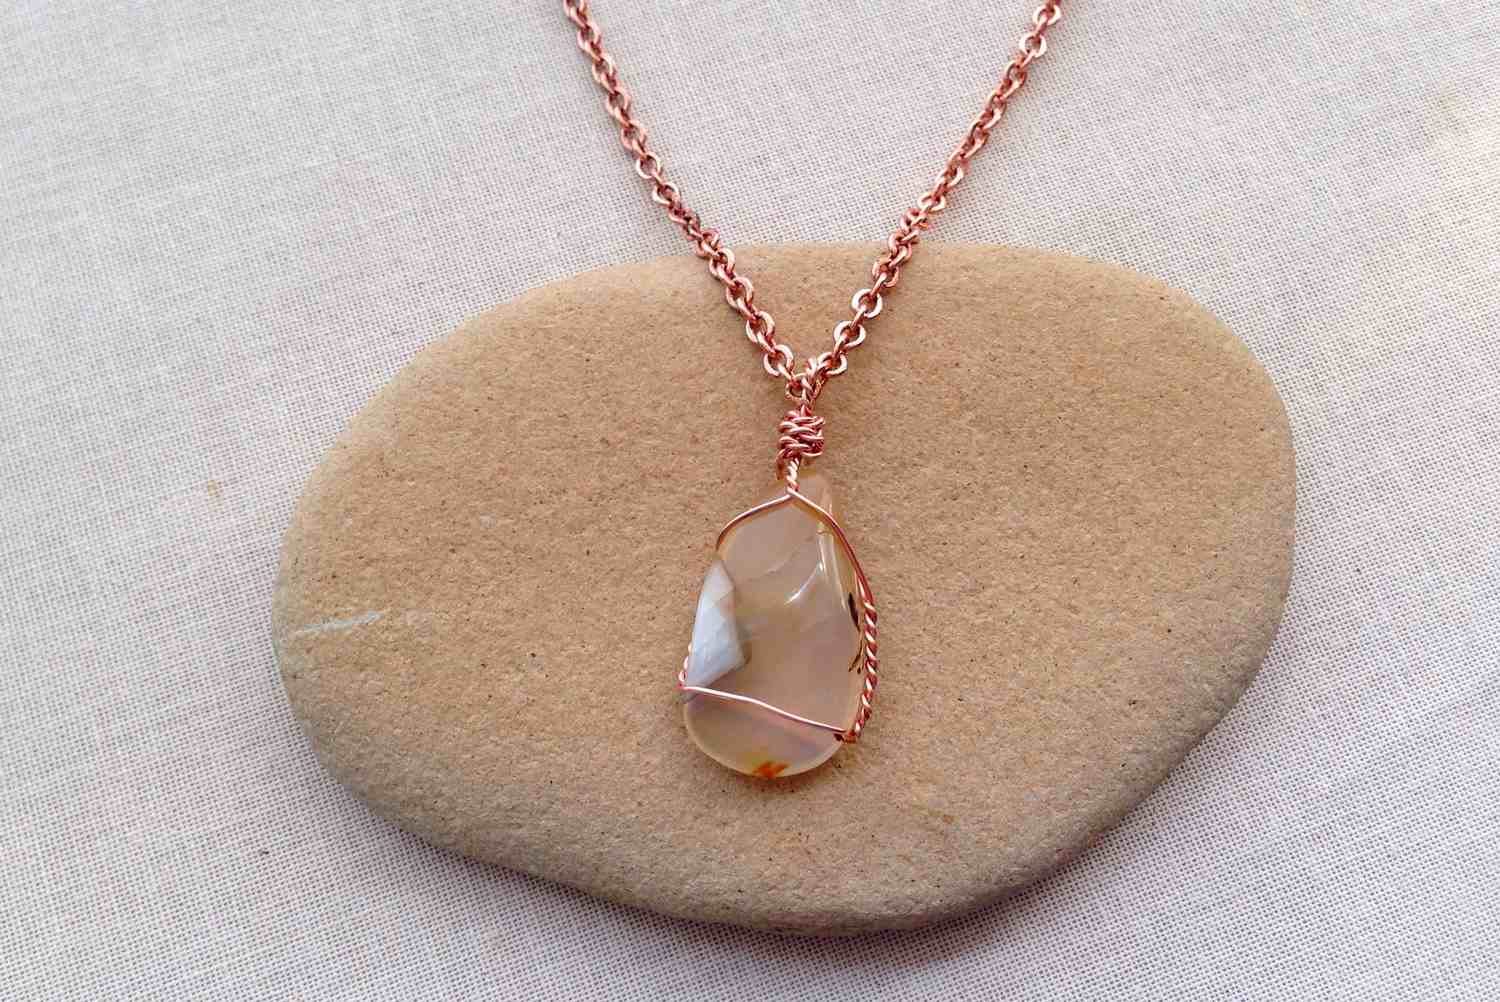 Wrap a Stone, Shell or Beach Glass into a Pendant